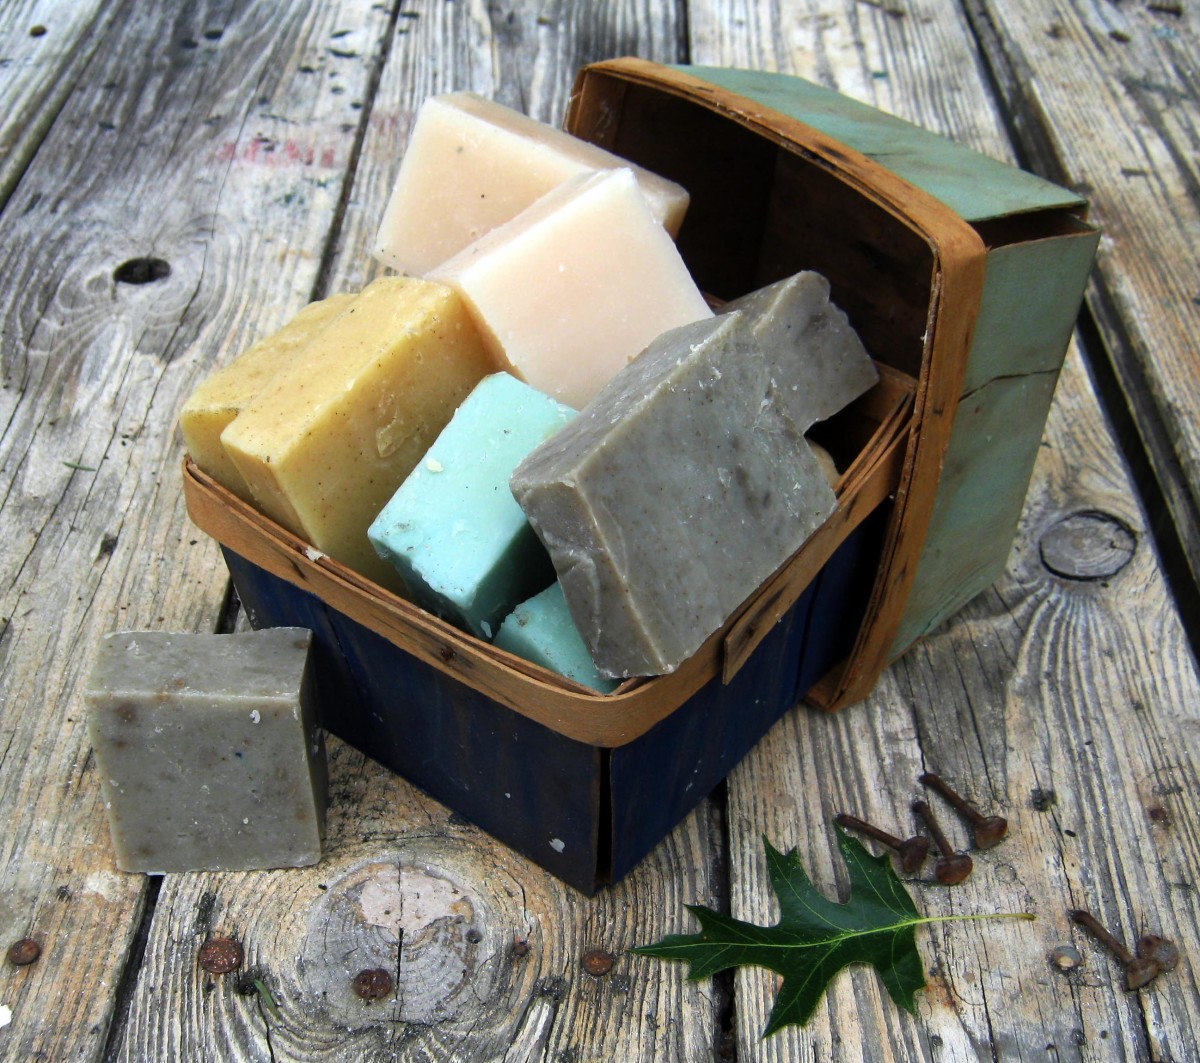 homemadesoap-how-omakesoapathome